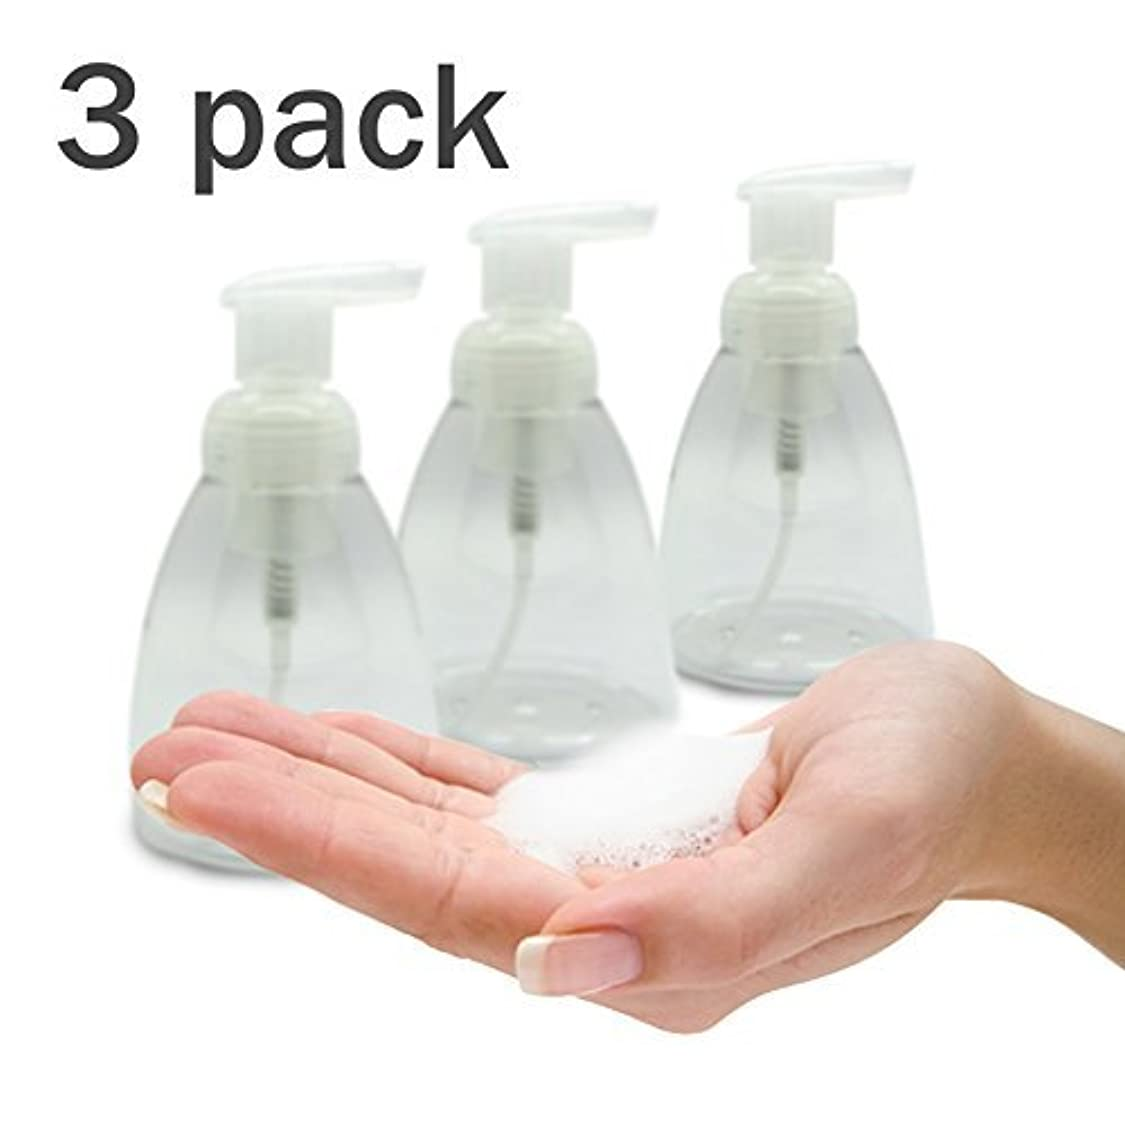 圧縮された推進読みやすいFoaming Soap Dispenser Set of 3 pack 300ml (10 oz) Empty Bottles Hand Soap Liquid Containers. Save Money! Less...